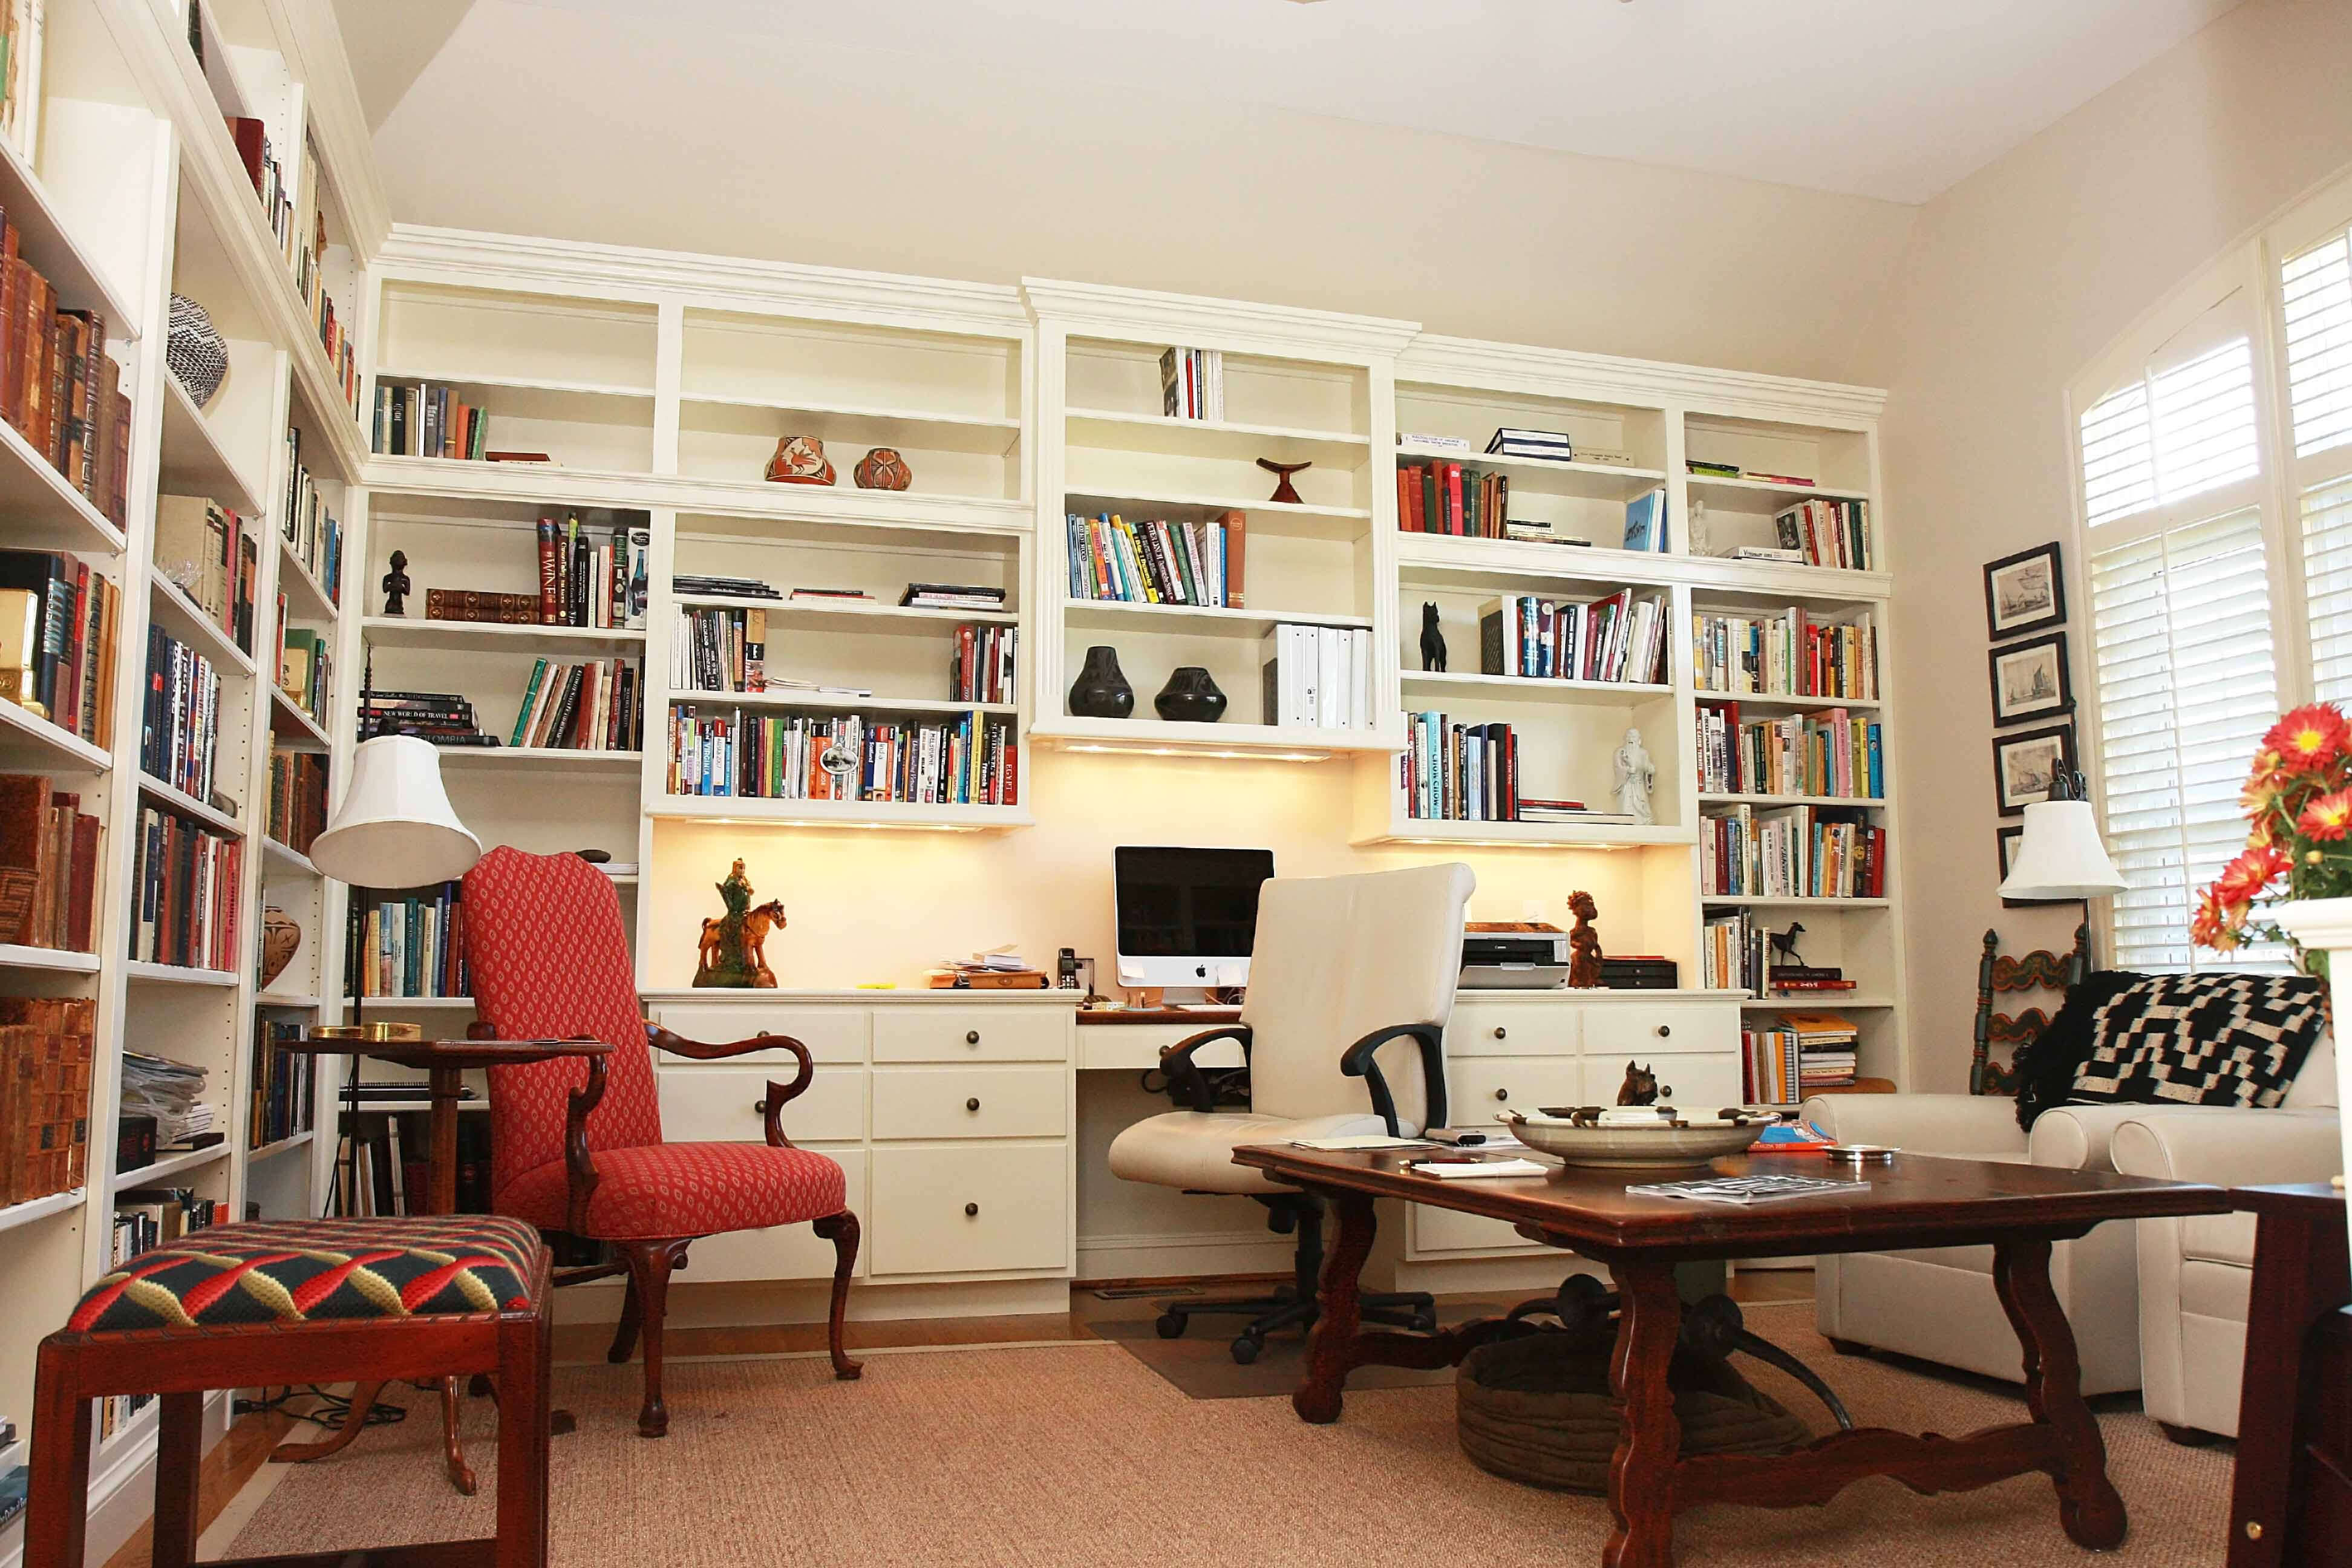 15 Smart Unfinished Basement Ideas On A Budget You Should Try